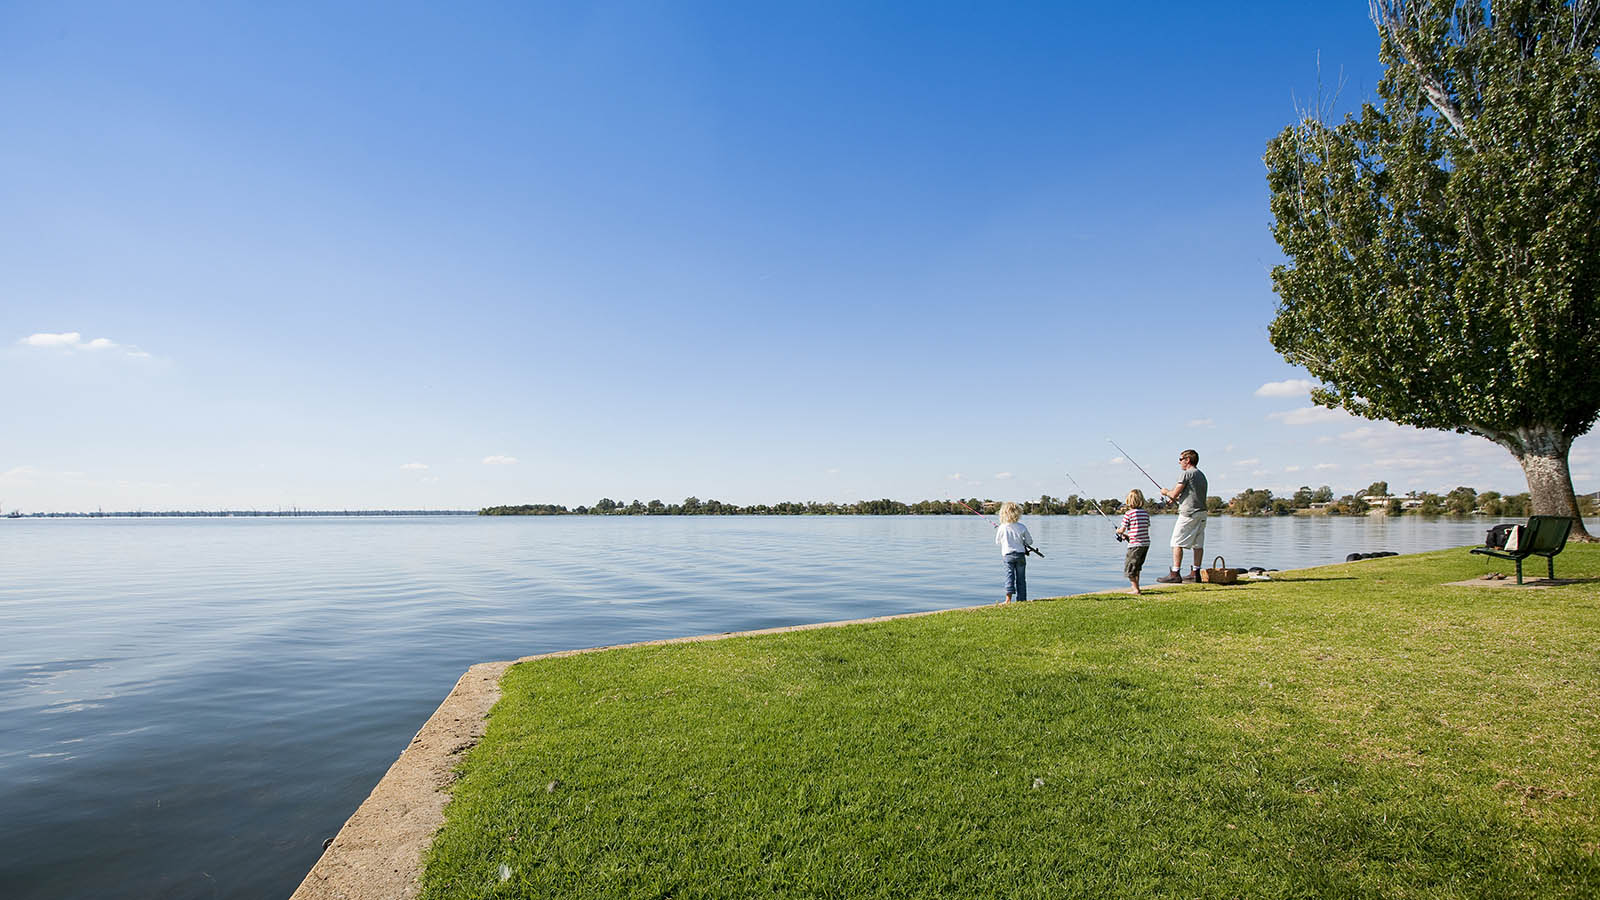 Fishing at Lake Mulwala, The Murray, Victoria, Australia